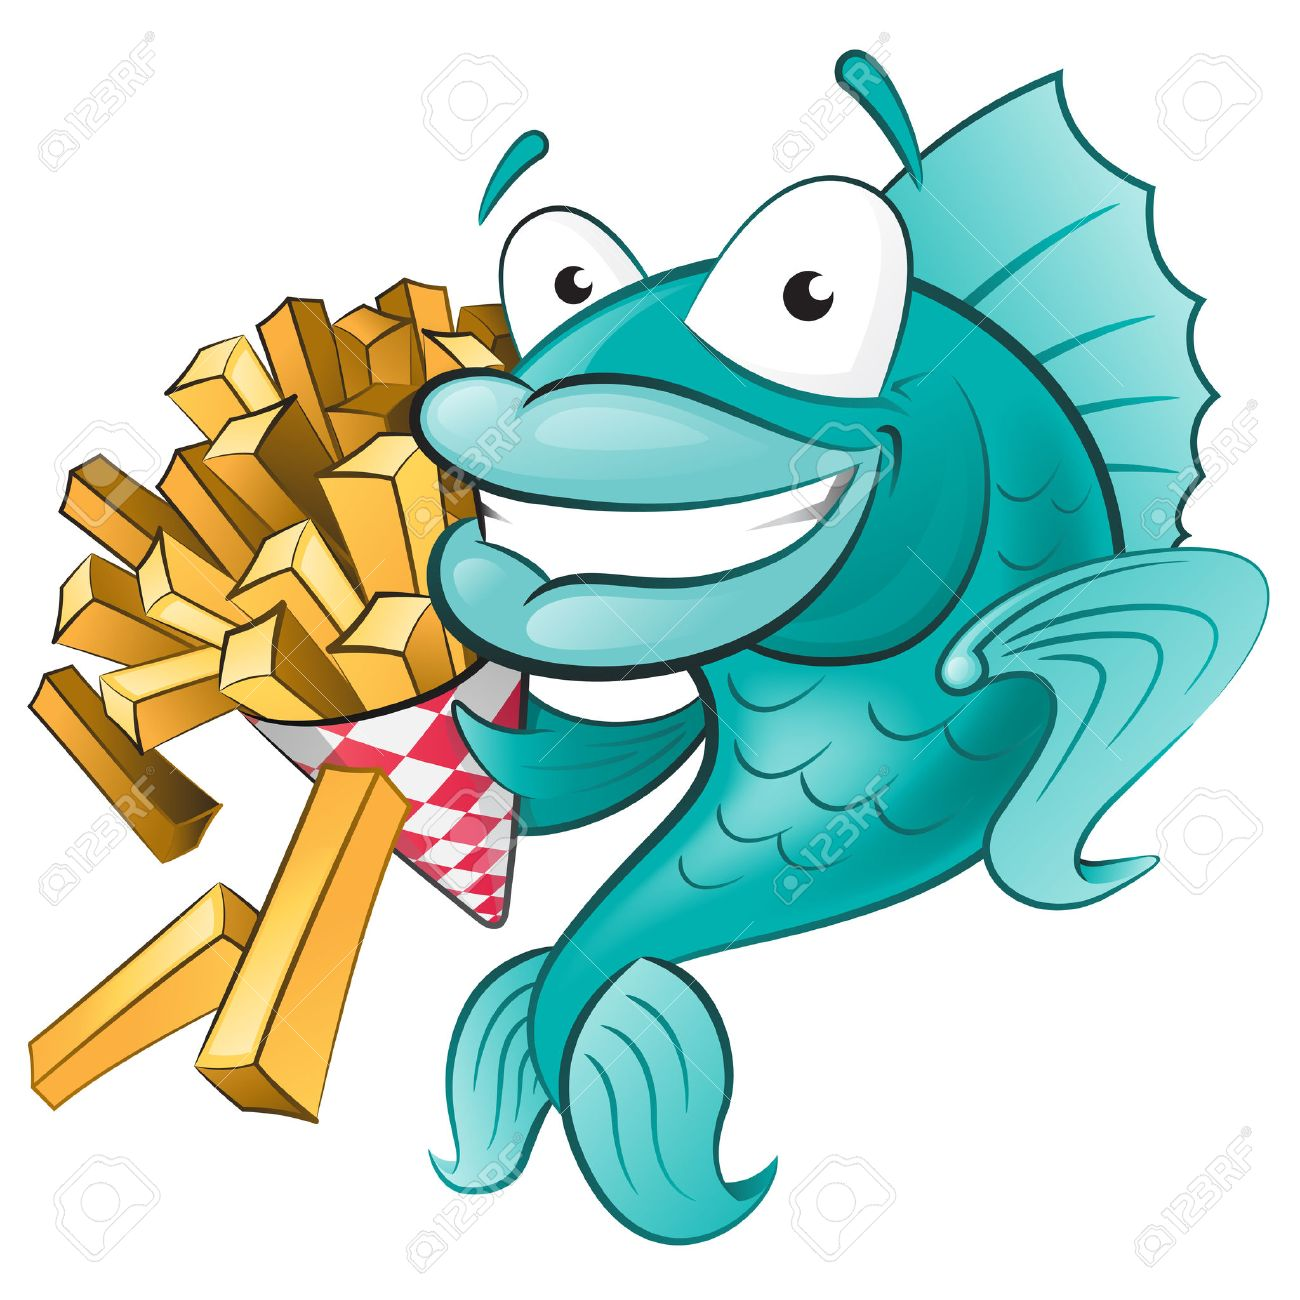 cartoon fish and chips royalty free cliparts vectors and stock rh 123rf com fish and chips cartoon images fish and chips cartoon wiki